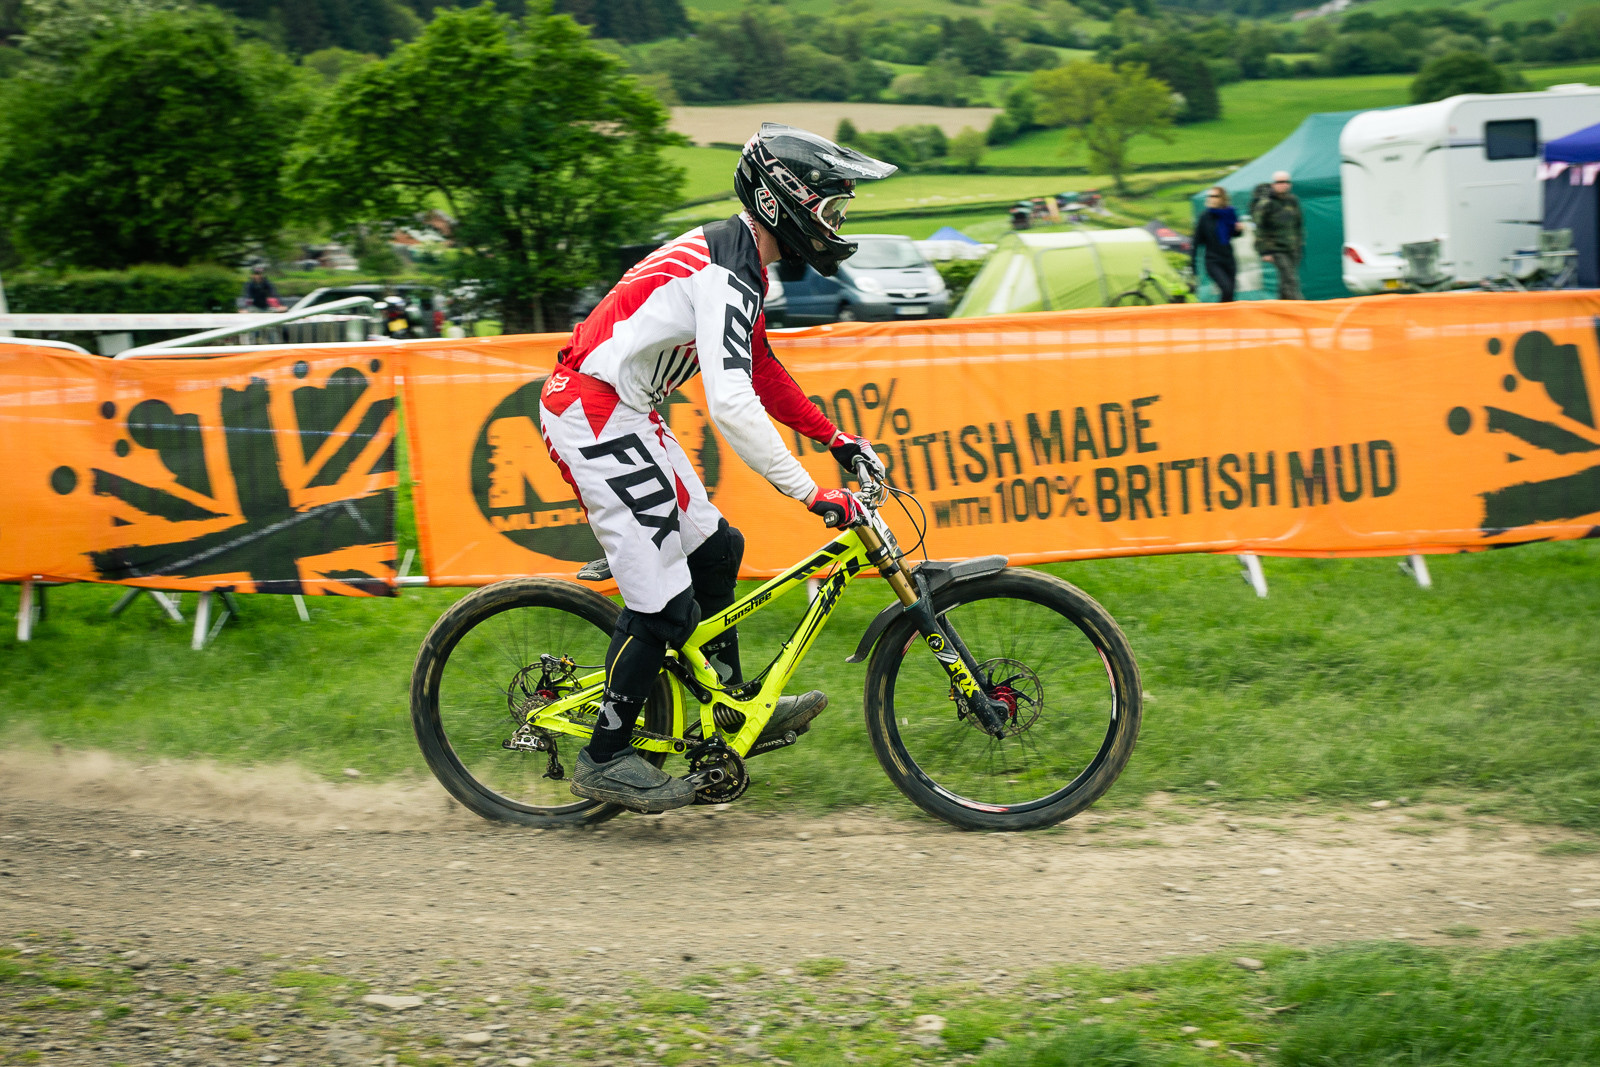 Banshee Legend G-ed Out at Llangollen - G-Out Project - Llangollen BDS 2015 - Mountain Biking Pictures - Vital MTB